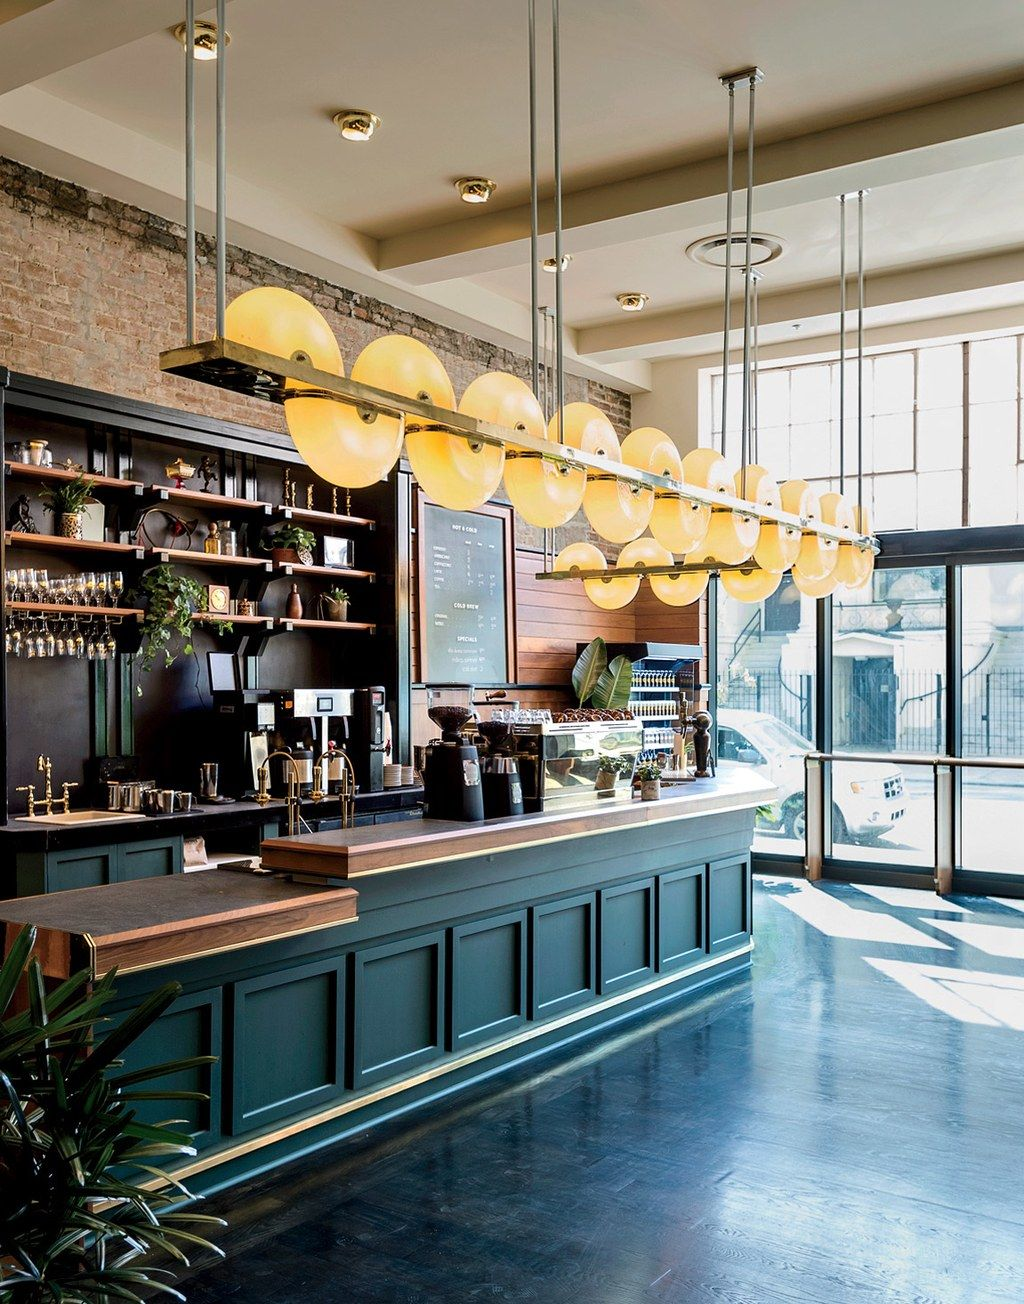 How Ace Hotel Is Changing Cities Across the U.S. Cafe